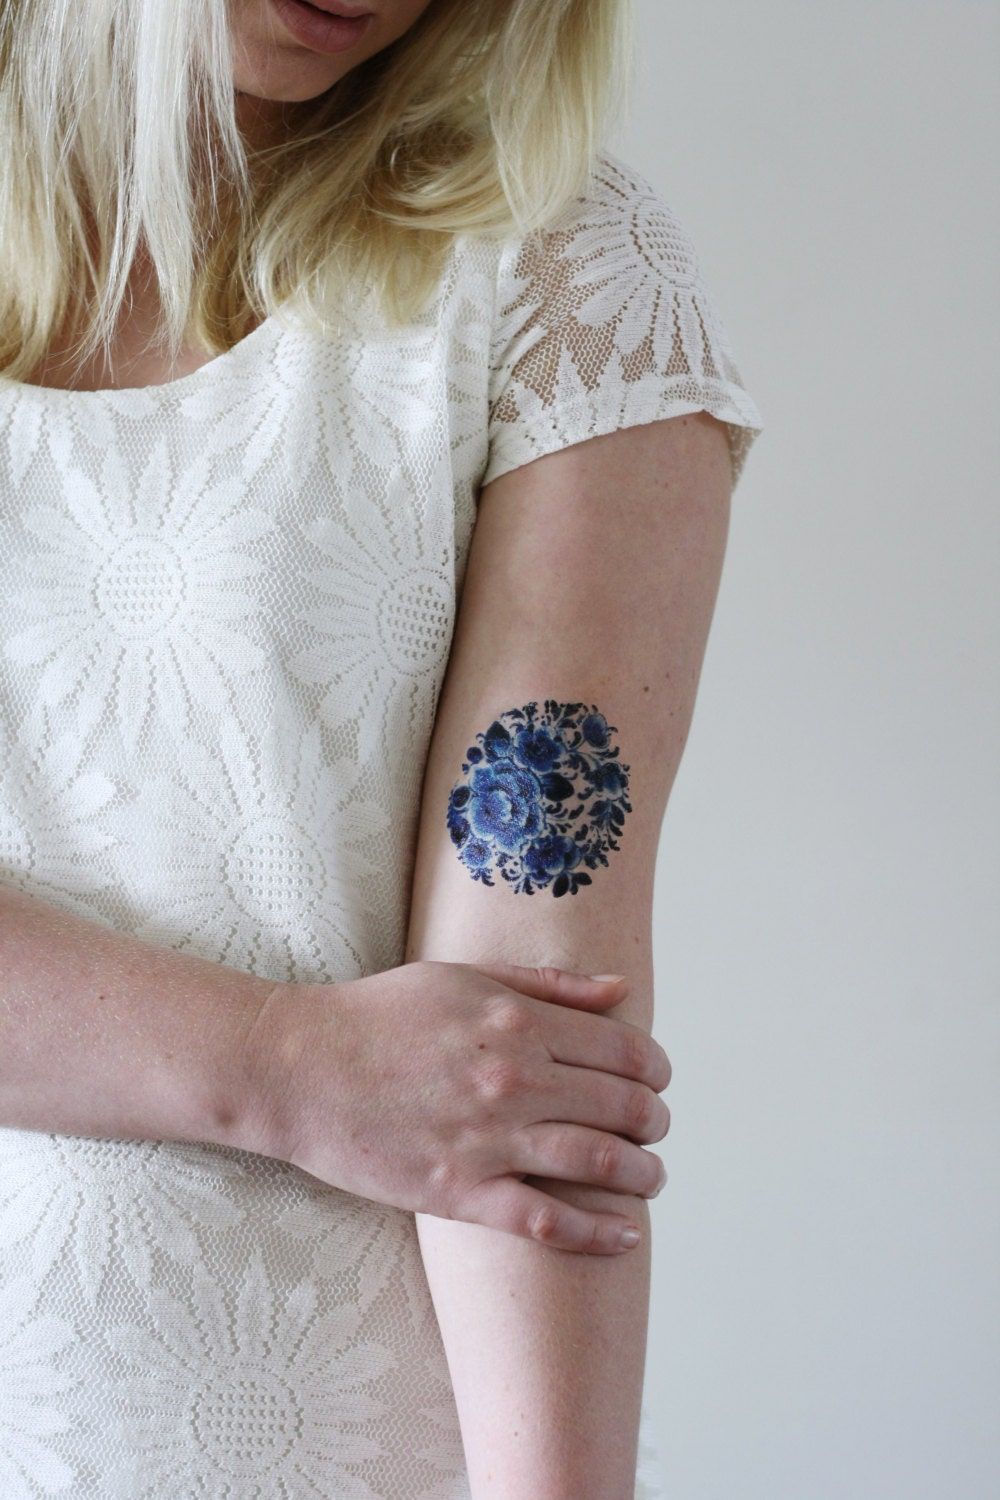 Delft Blue Temporary Tattoo Floral Temporary Tattoo Flower Etsy